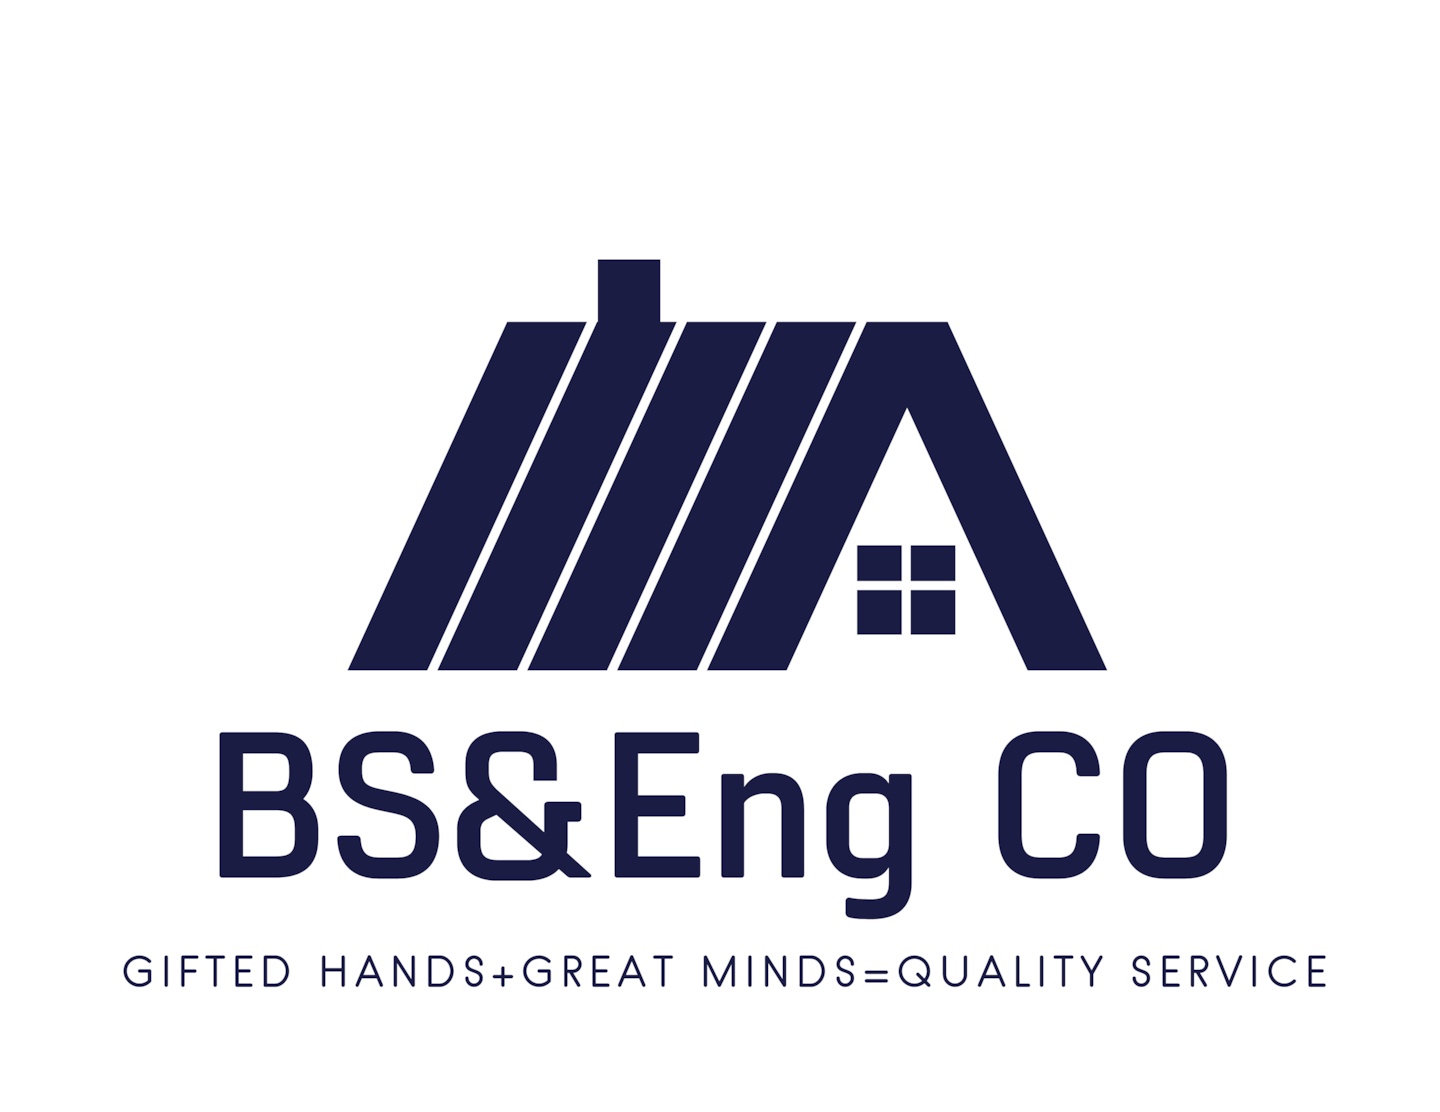 BS&Eng CO